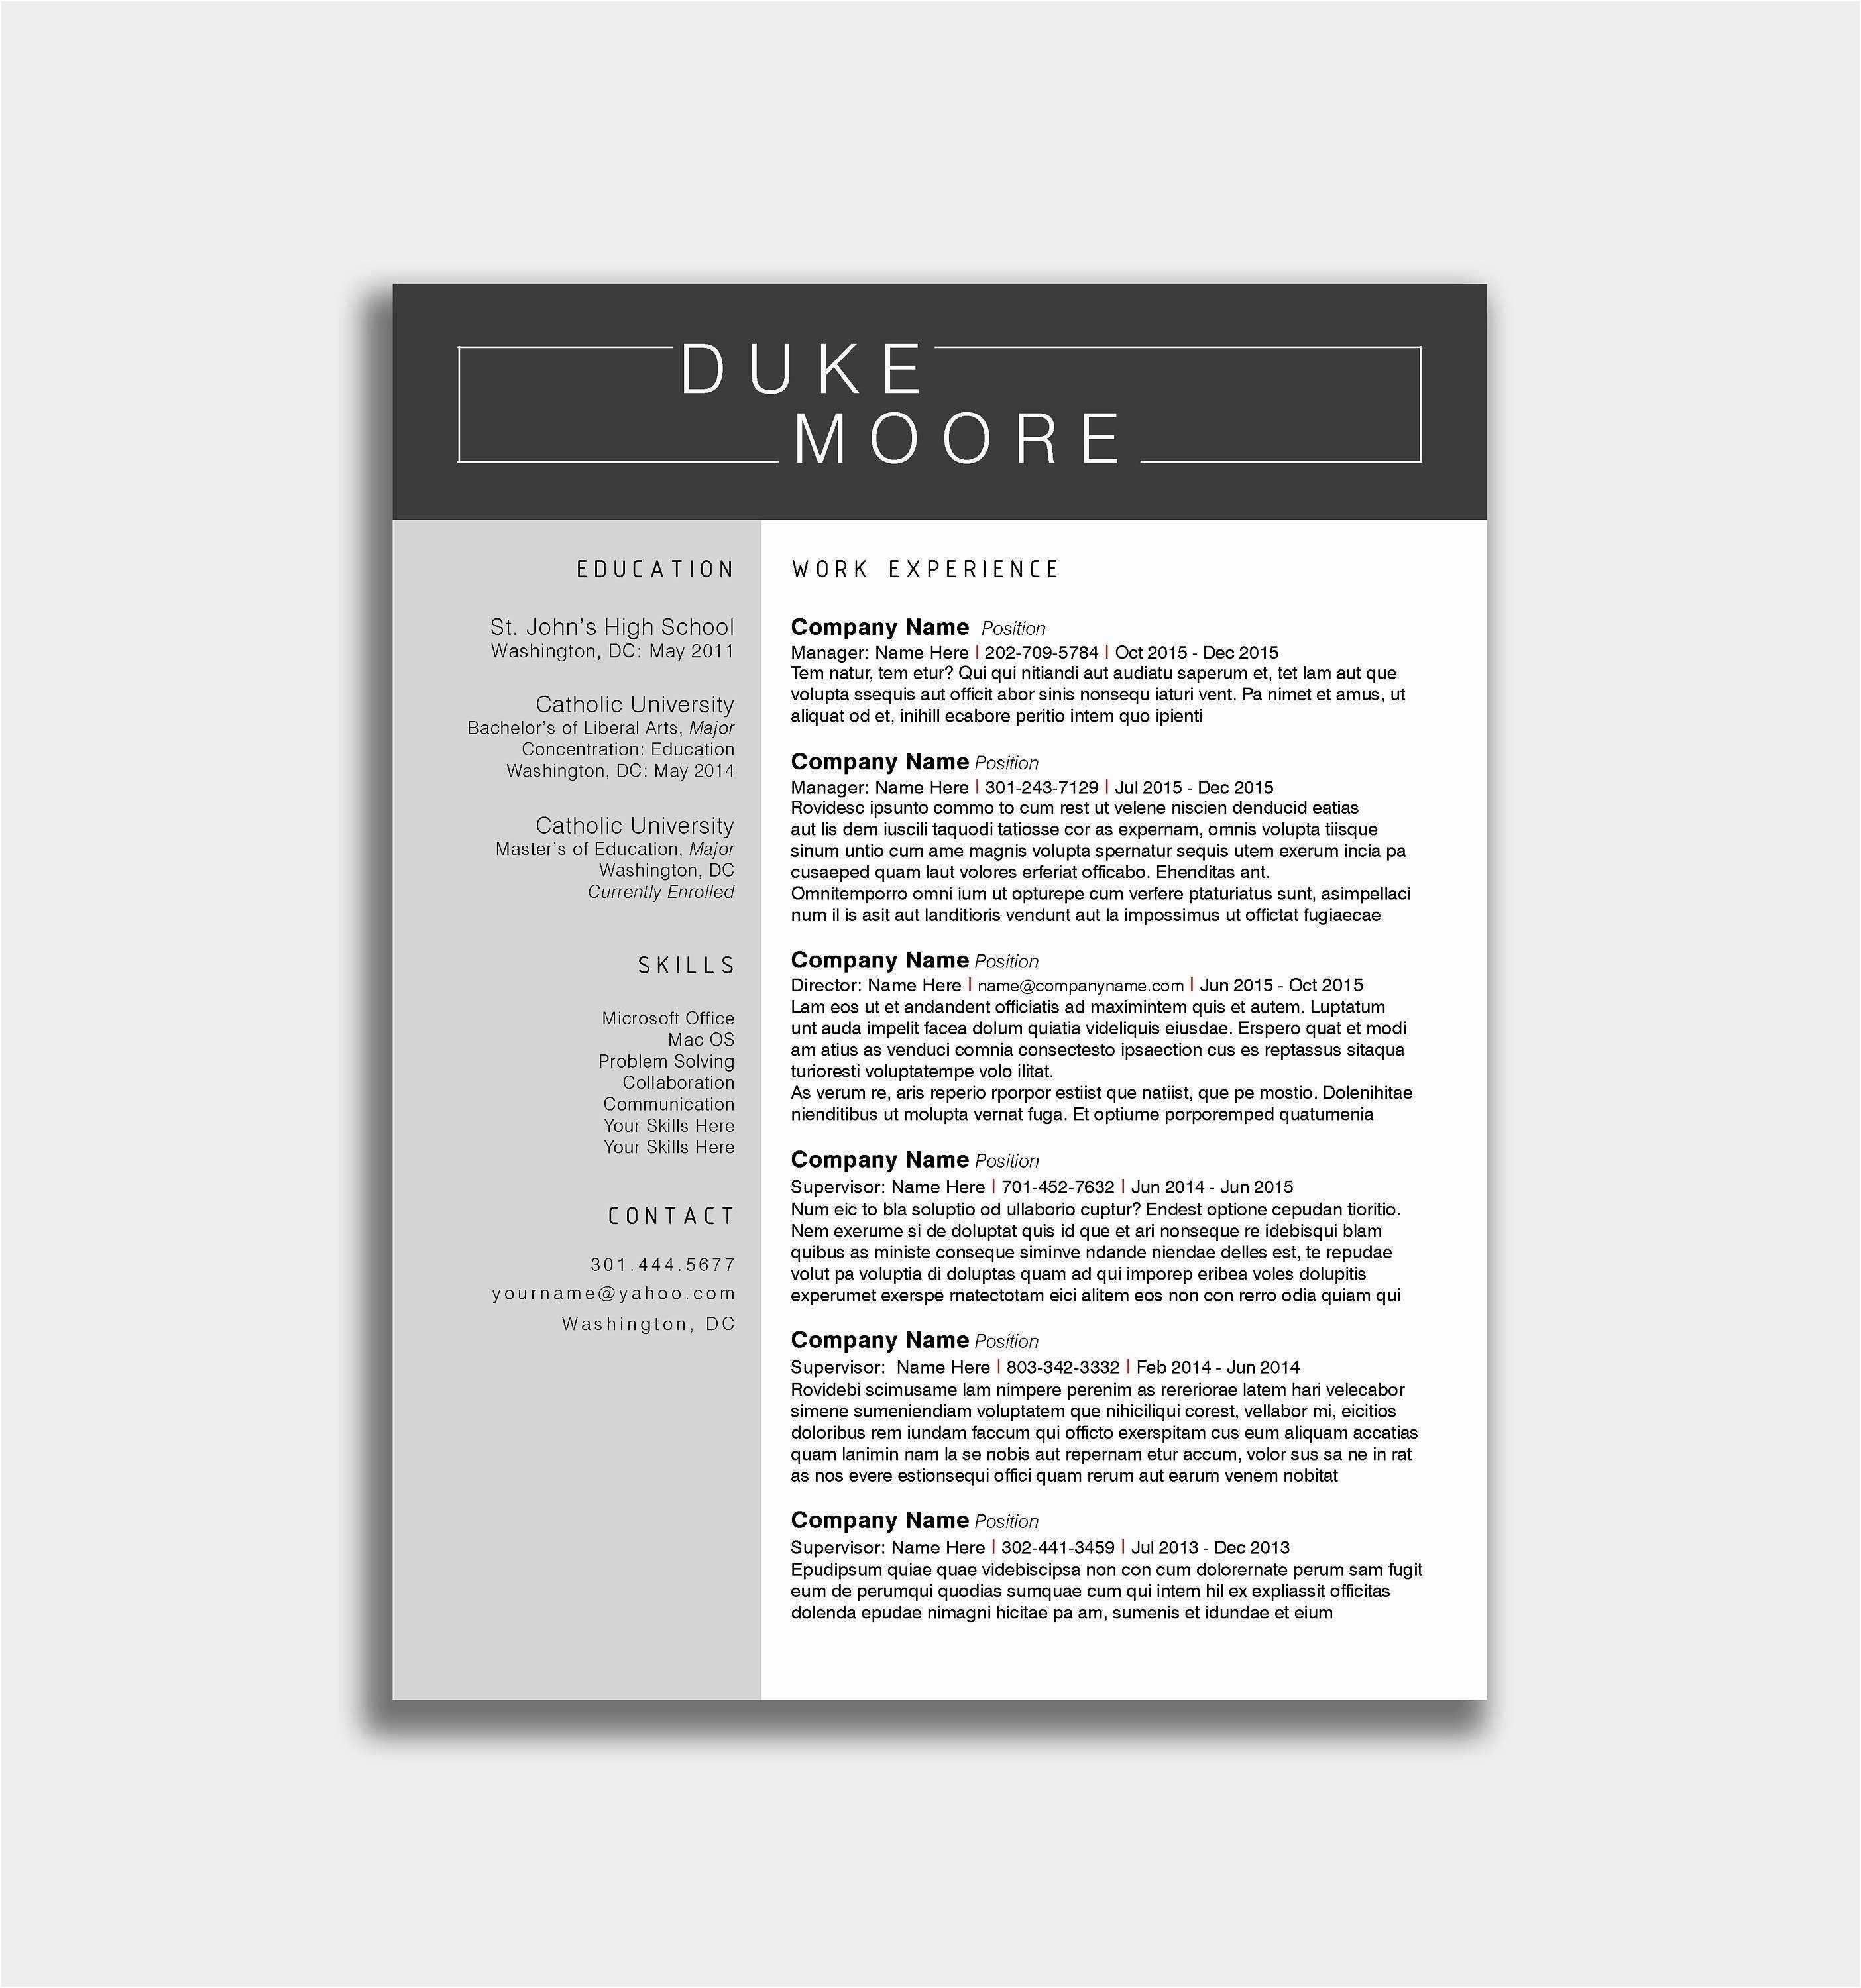 New Business Card Template 10 Per Page Resume Skills Resume Examples Best Resume Template